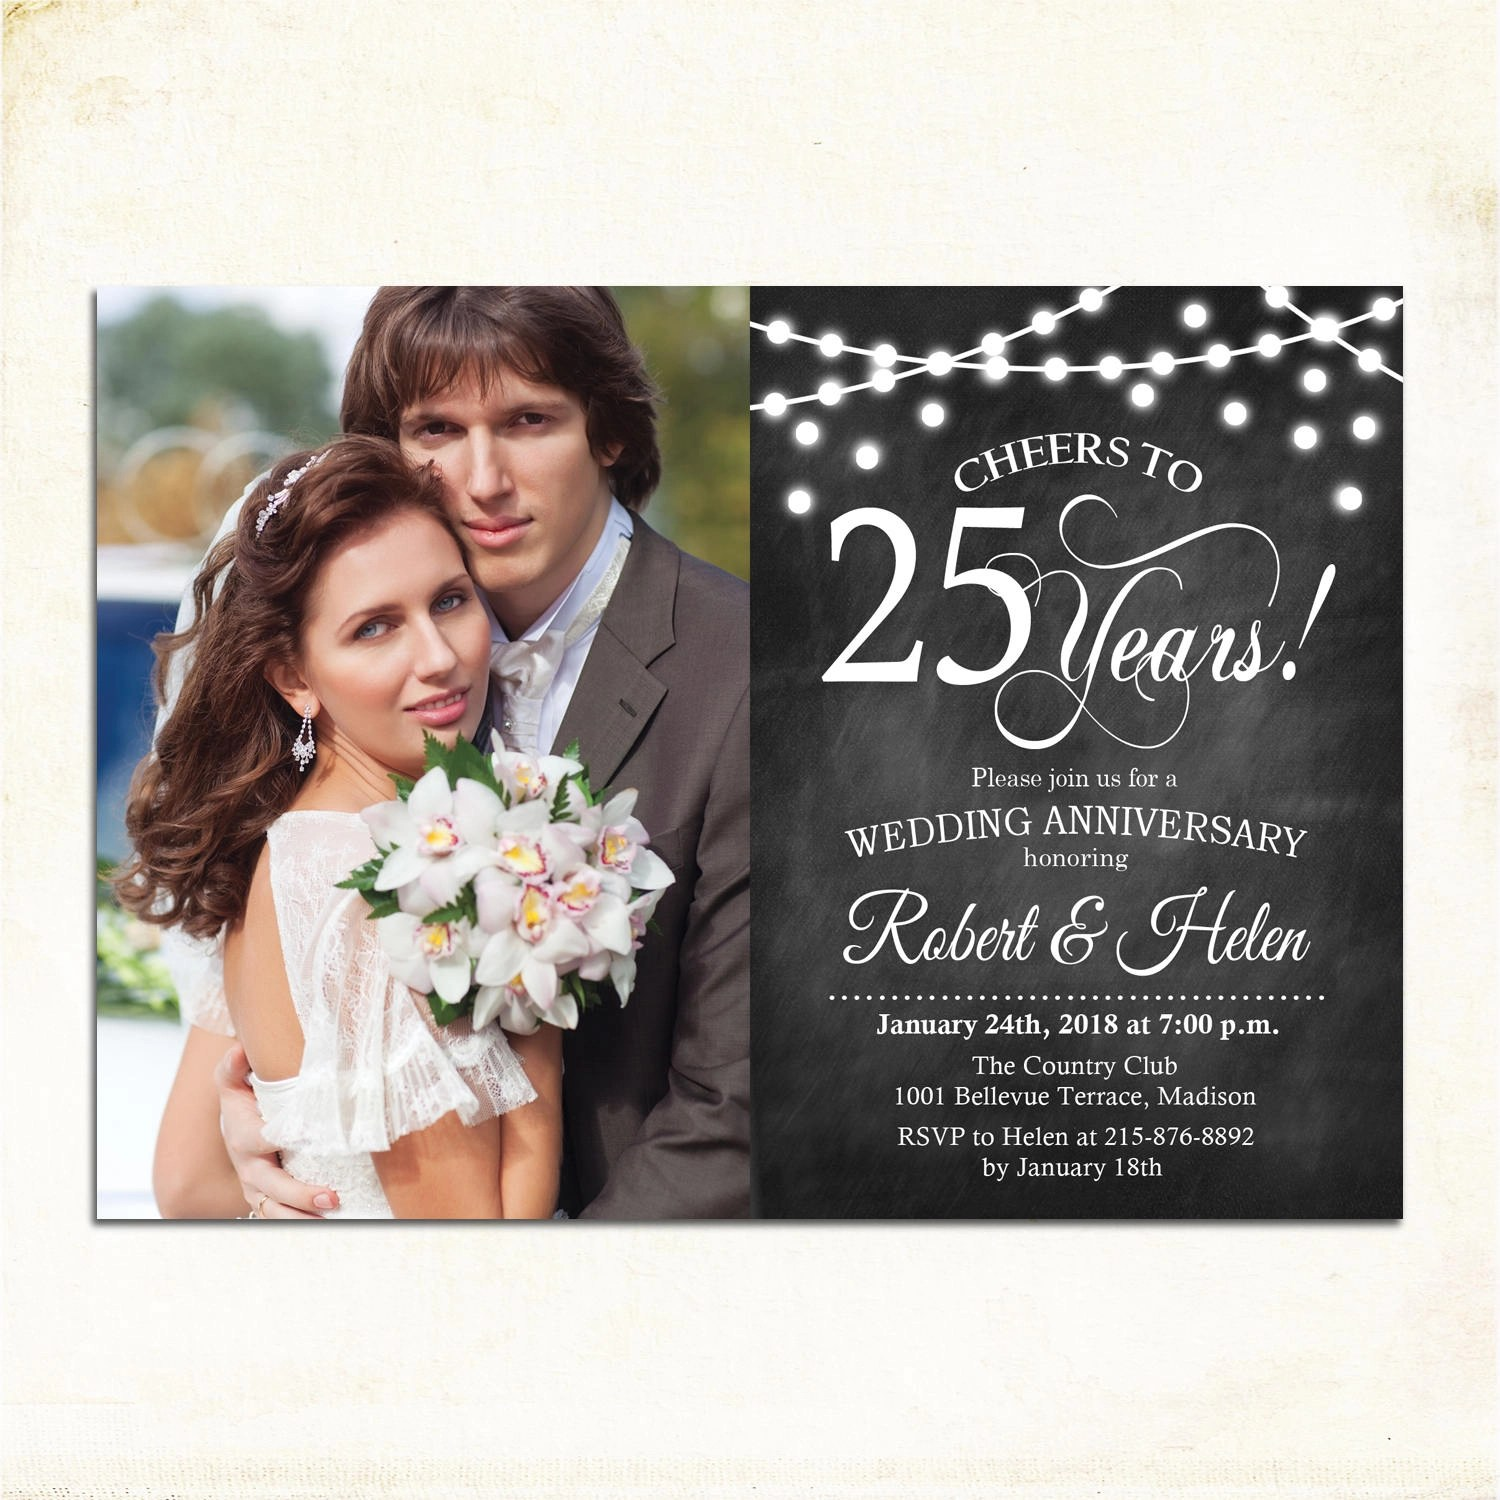 21 Wedding Anniversary Invitation Designs and Examples  PSD AI  Examples